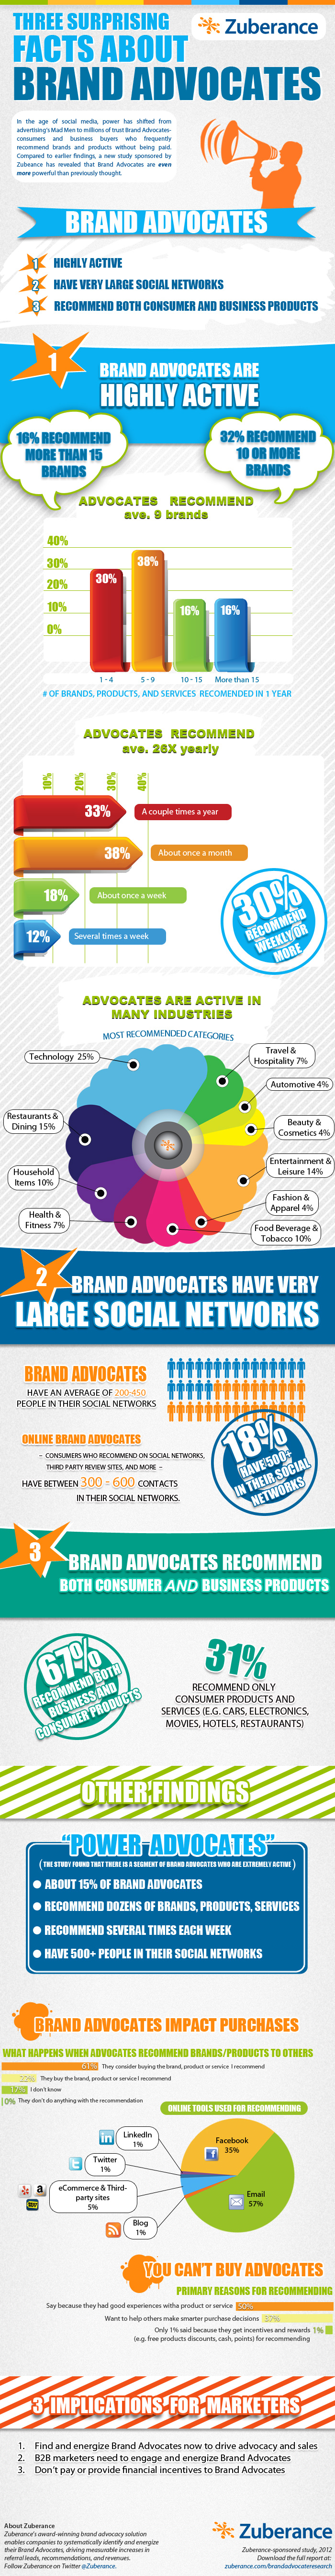 Three Surprising Facts About Brand Advocates. #Infographic